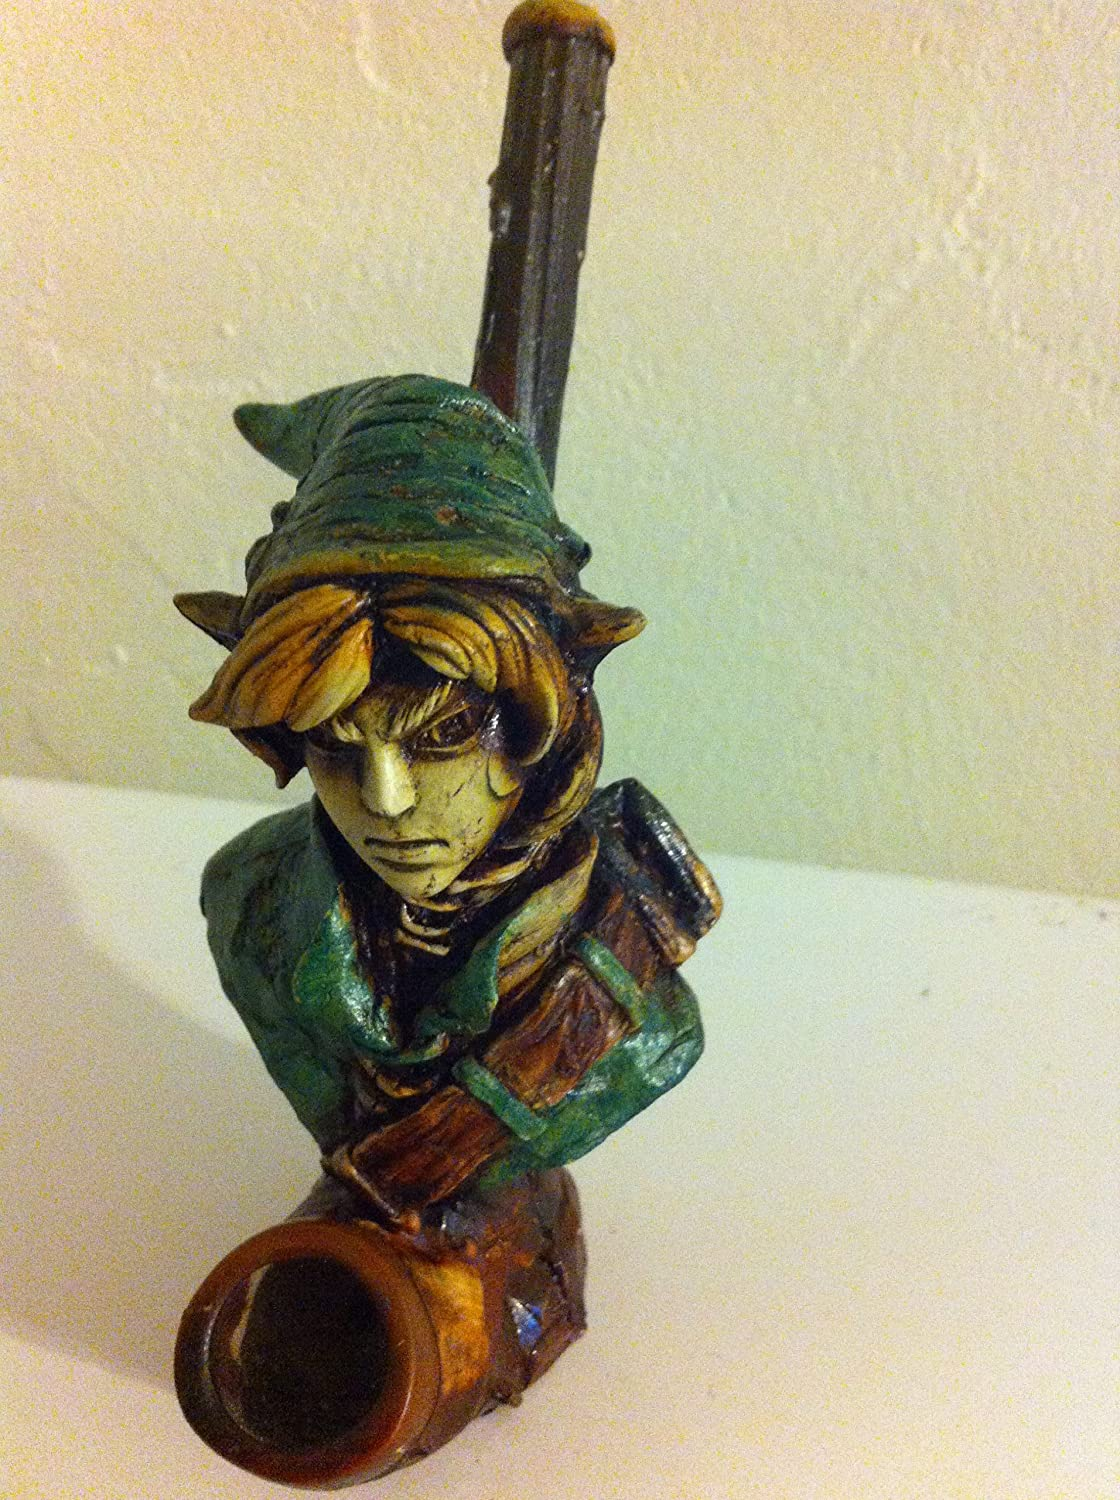 Legend of Zelda - Link Pipe